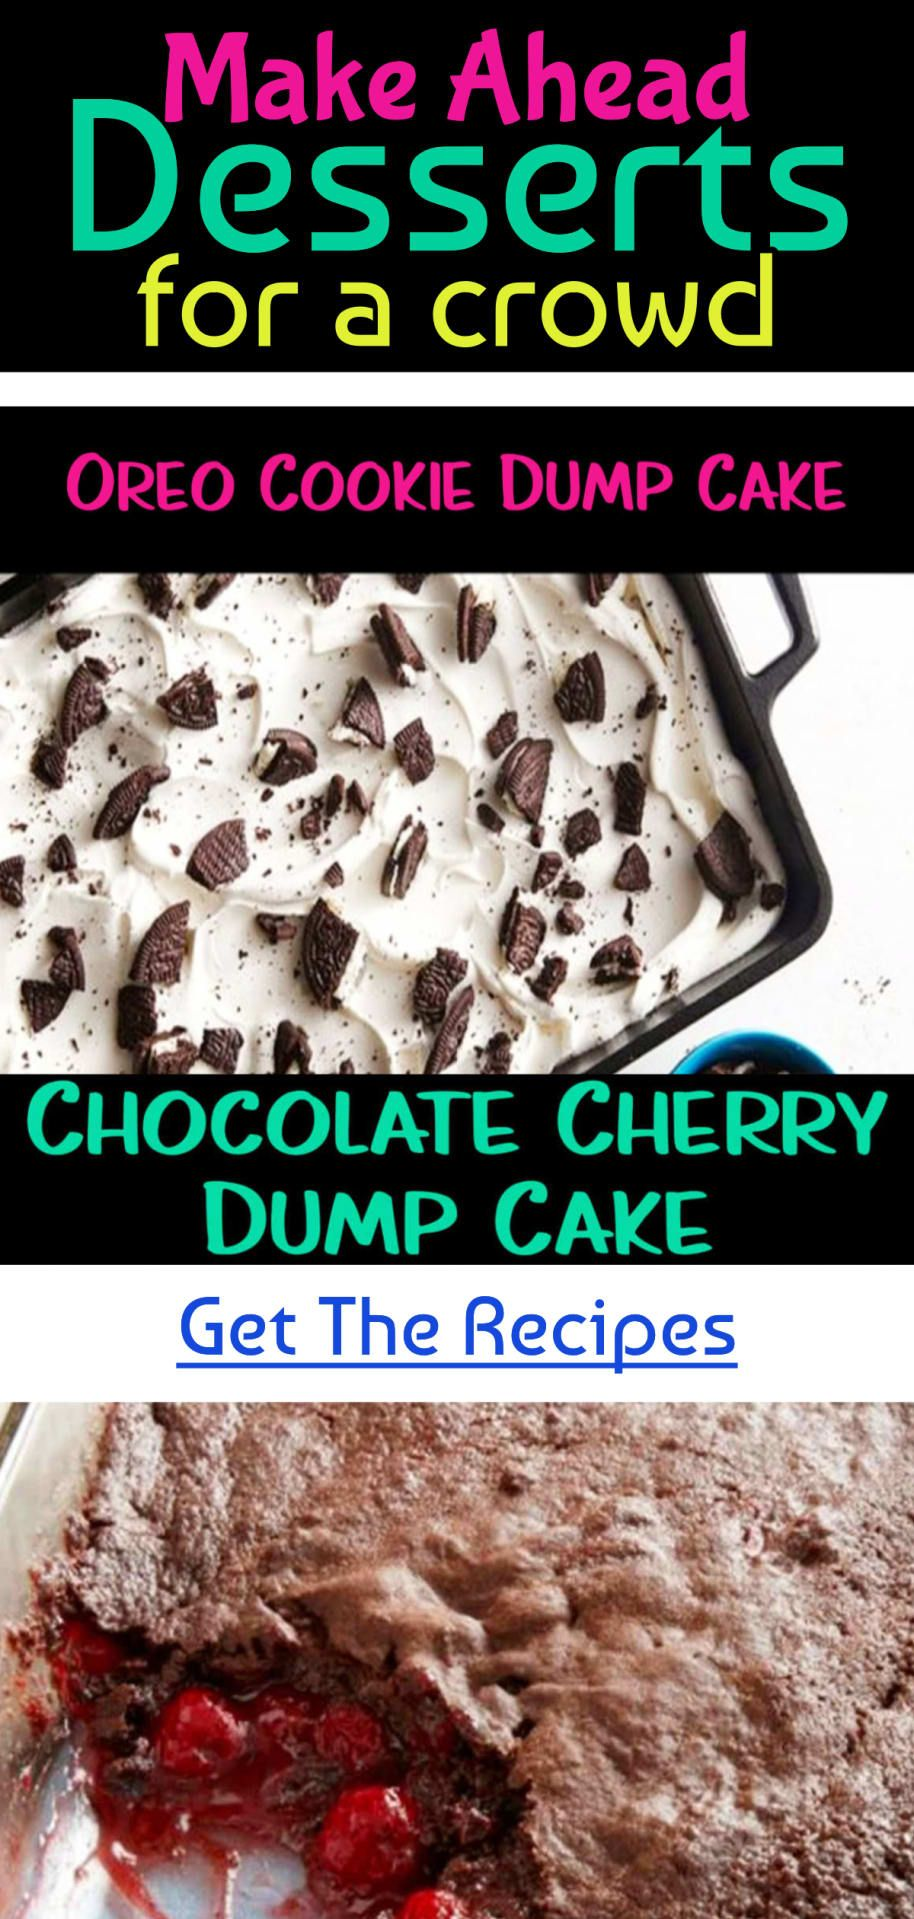 Super Simple Desserts Easy Dump Cake Recipes For Quick And Delicious Desserts For A Crowd Clever Diy Ideas Desserts For A Crowd Dump Cake Recipes Easy Dump Cake Recipe